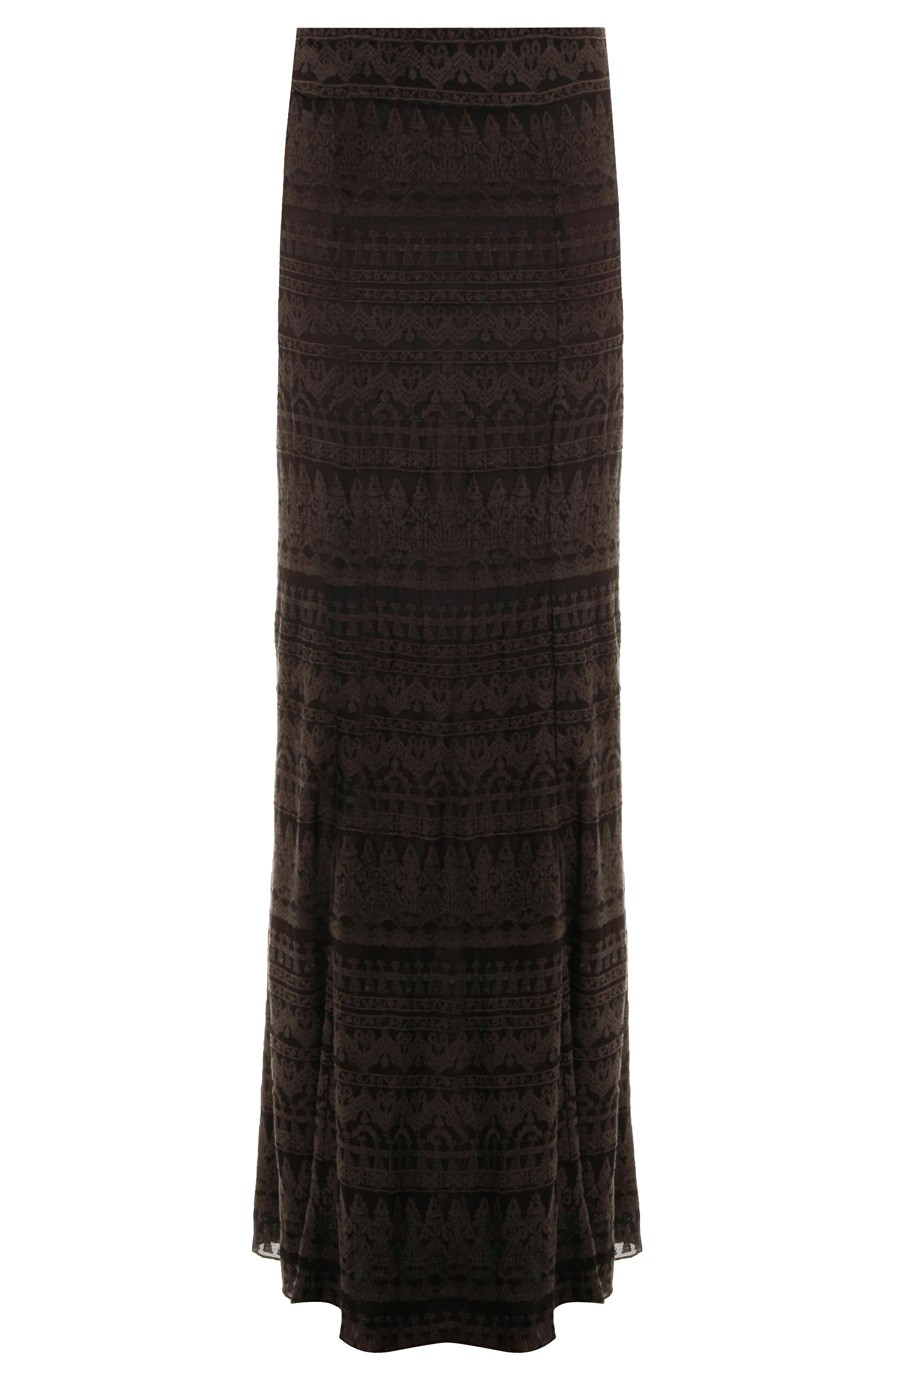 Boutique 1 - ISABEL MARANT - Black Tory Embrd Gauze Maxi Skirt | Boutique1.com